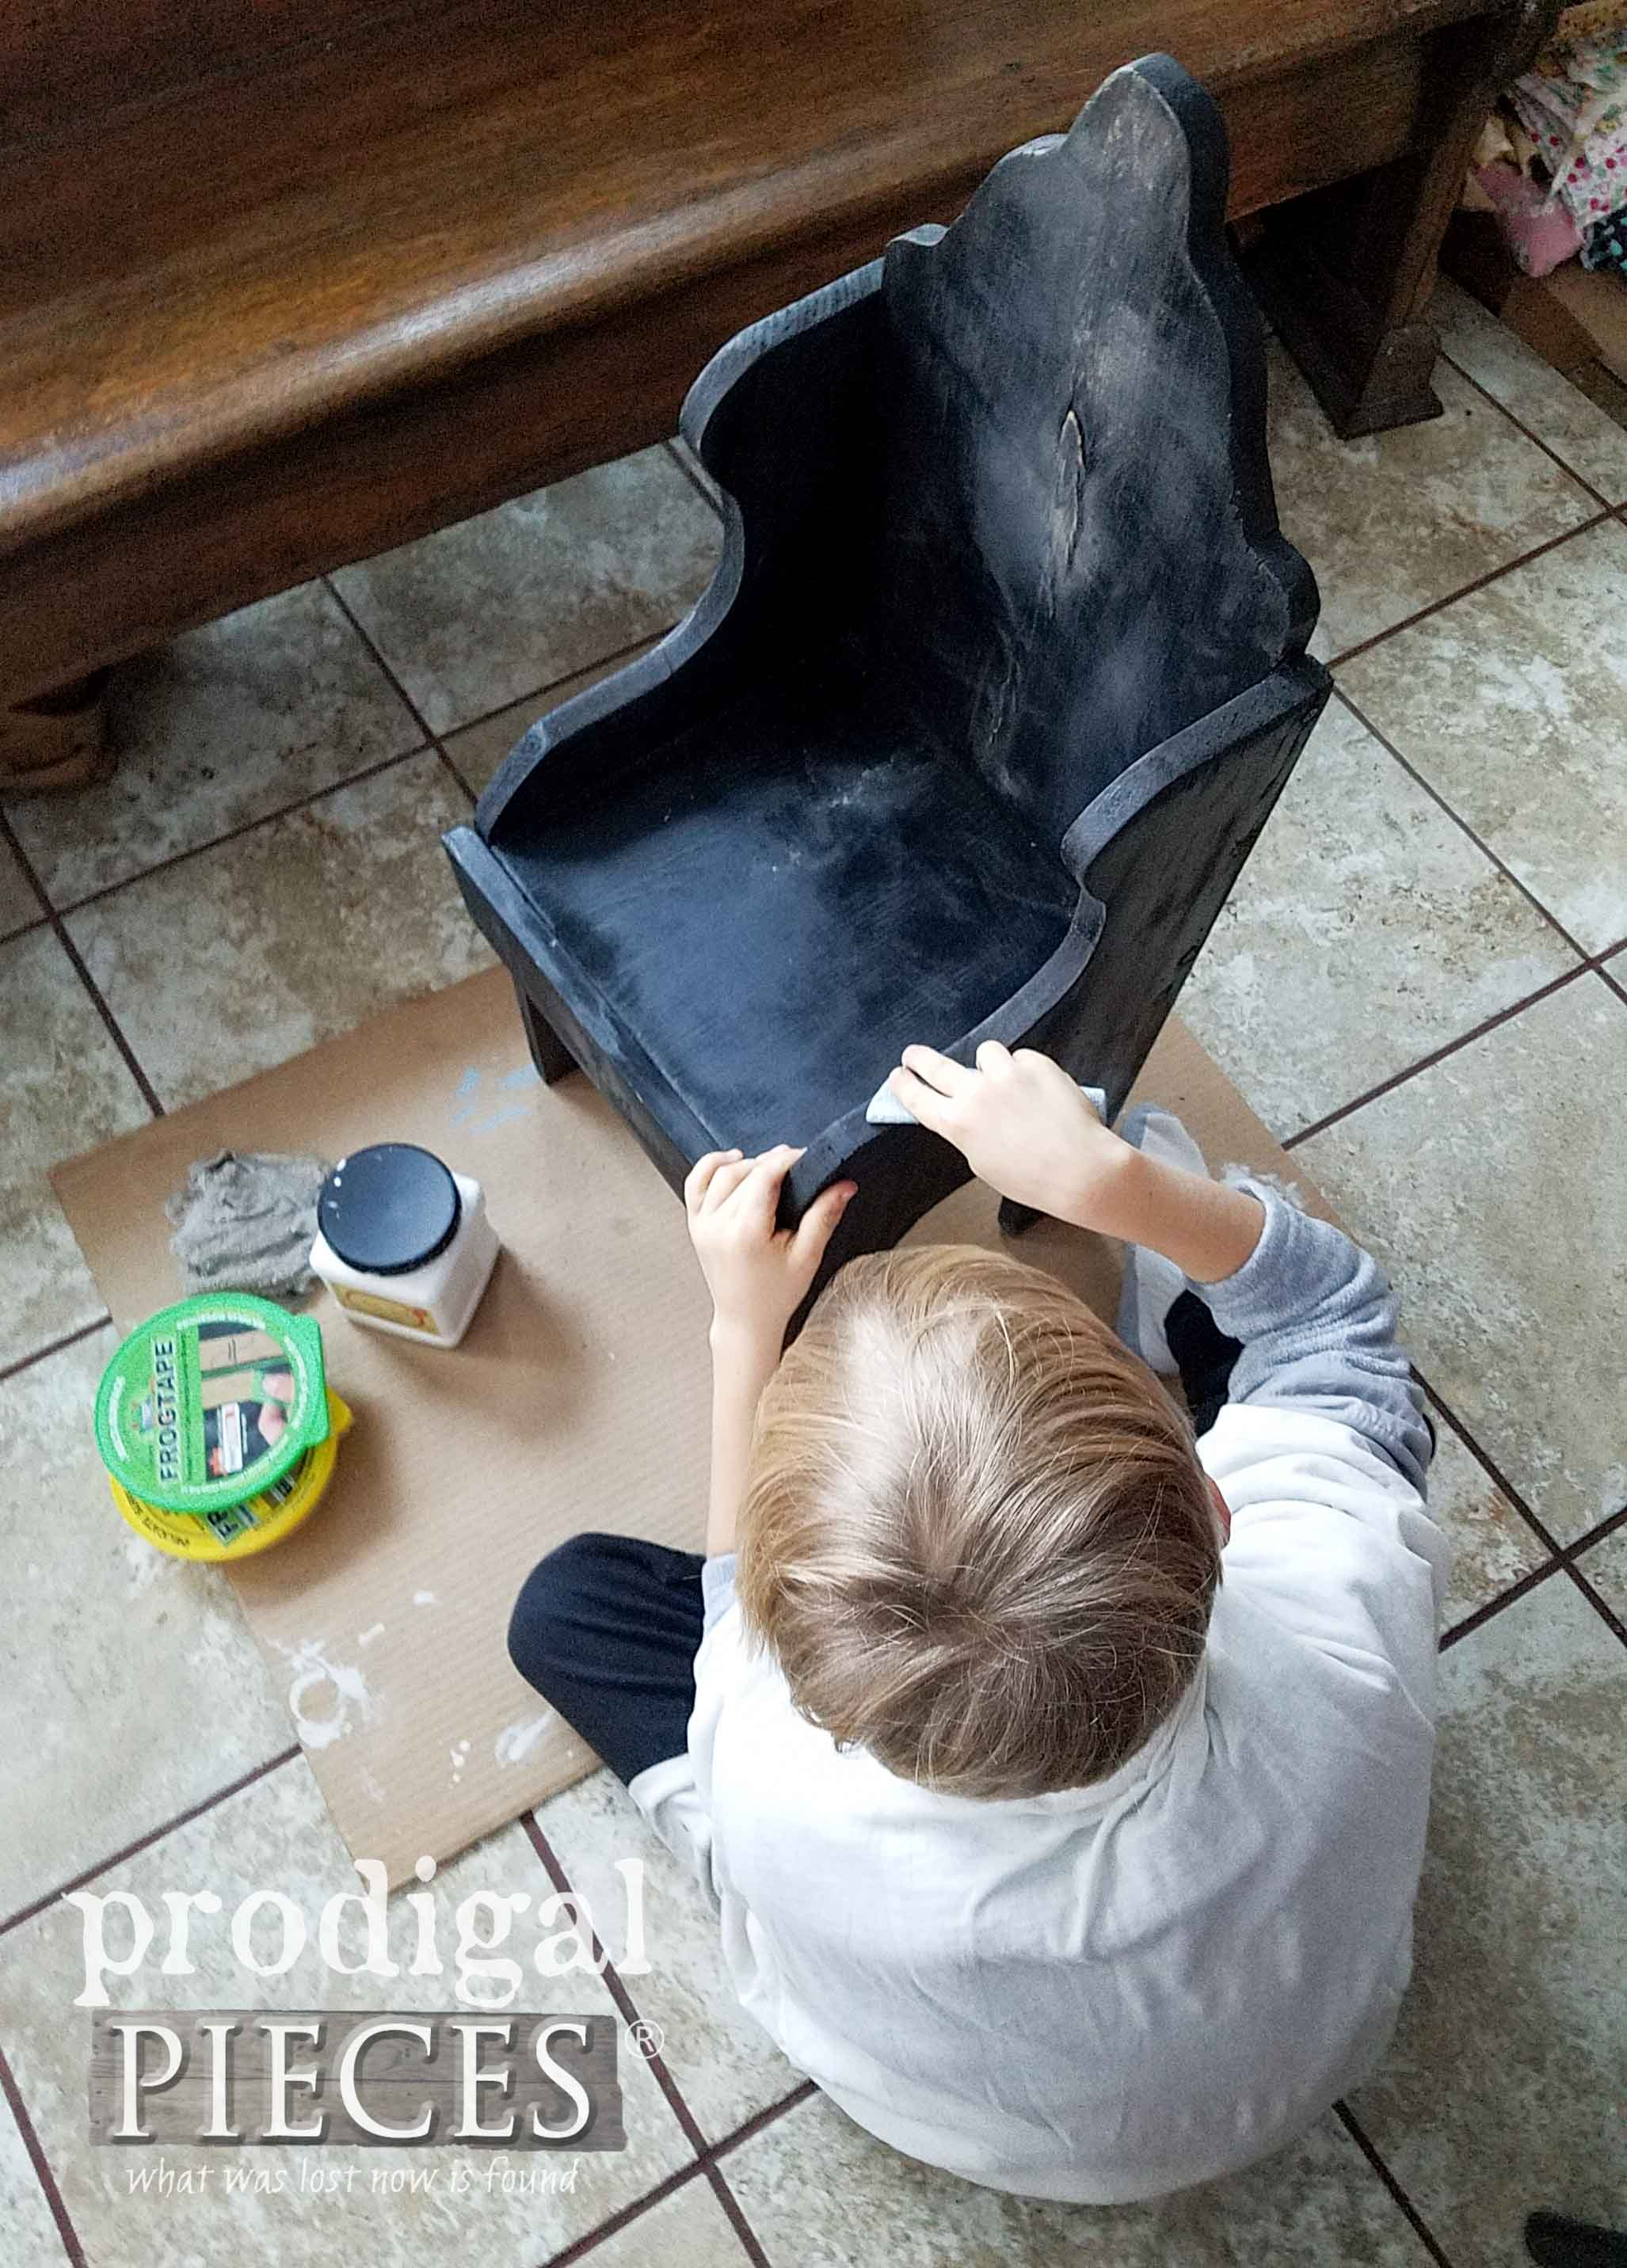 Boy Sanding Chair to Show Kids Learning DIY Skills | prodigalpieces.com